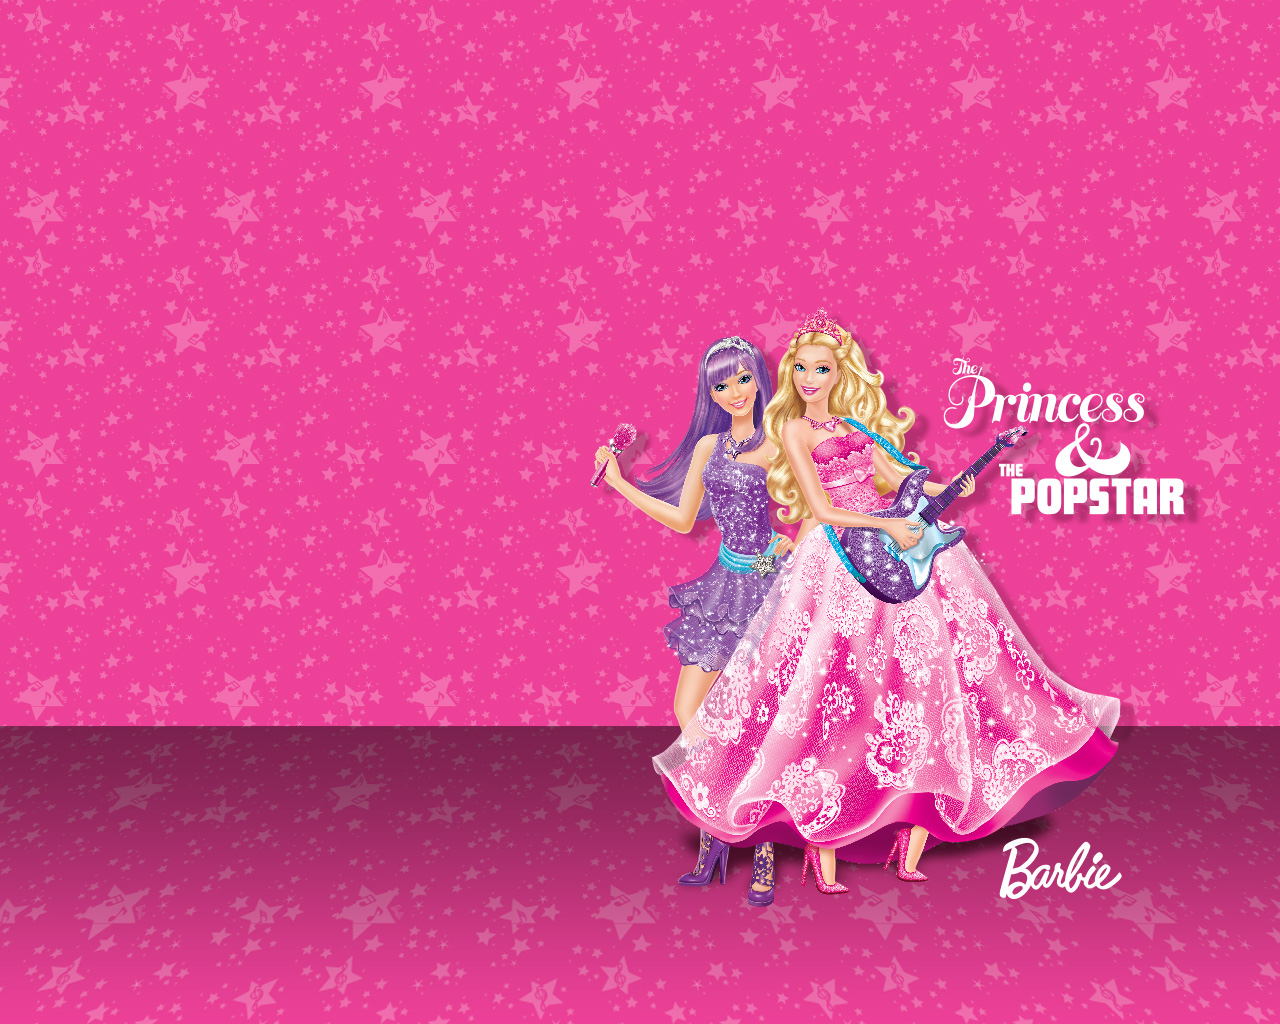 Pink Princesa & Pop Star Barbie - Pink Princesa & Pop Star Barbie